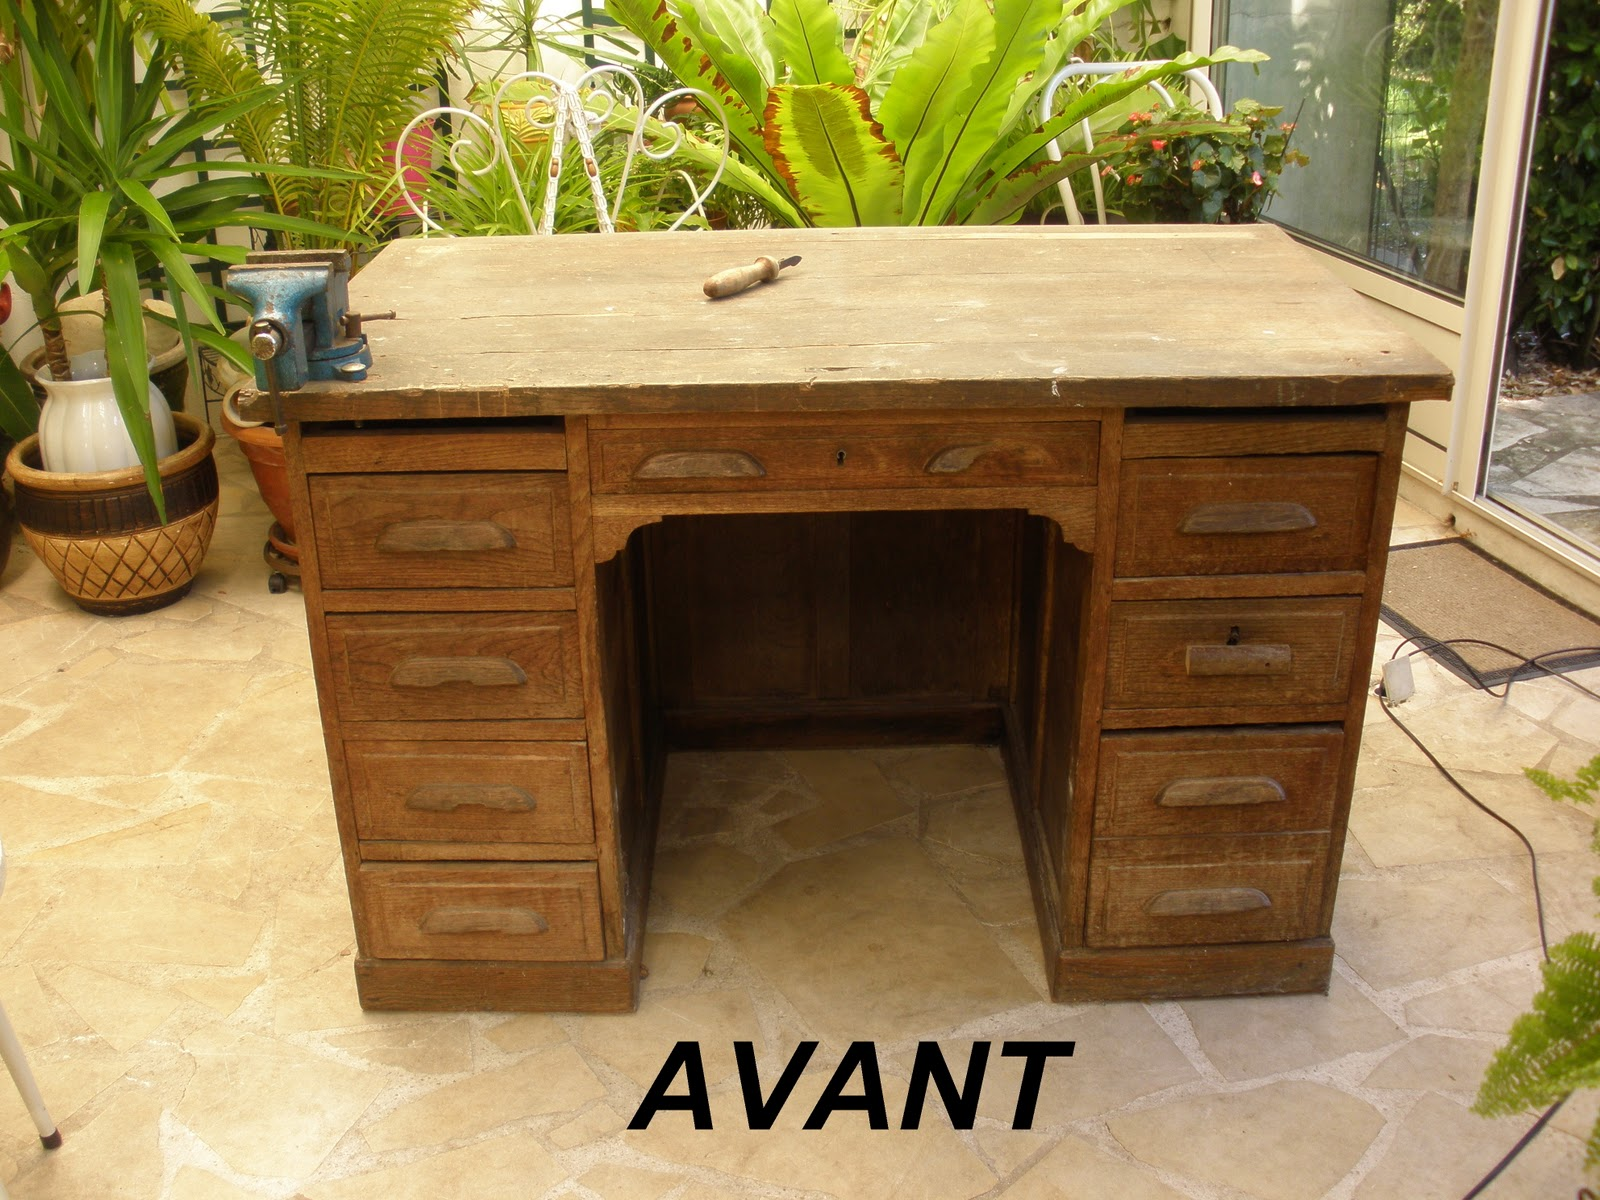 Customiser un bureau en bois - Customiser un bureau en bois ...